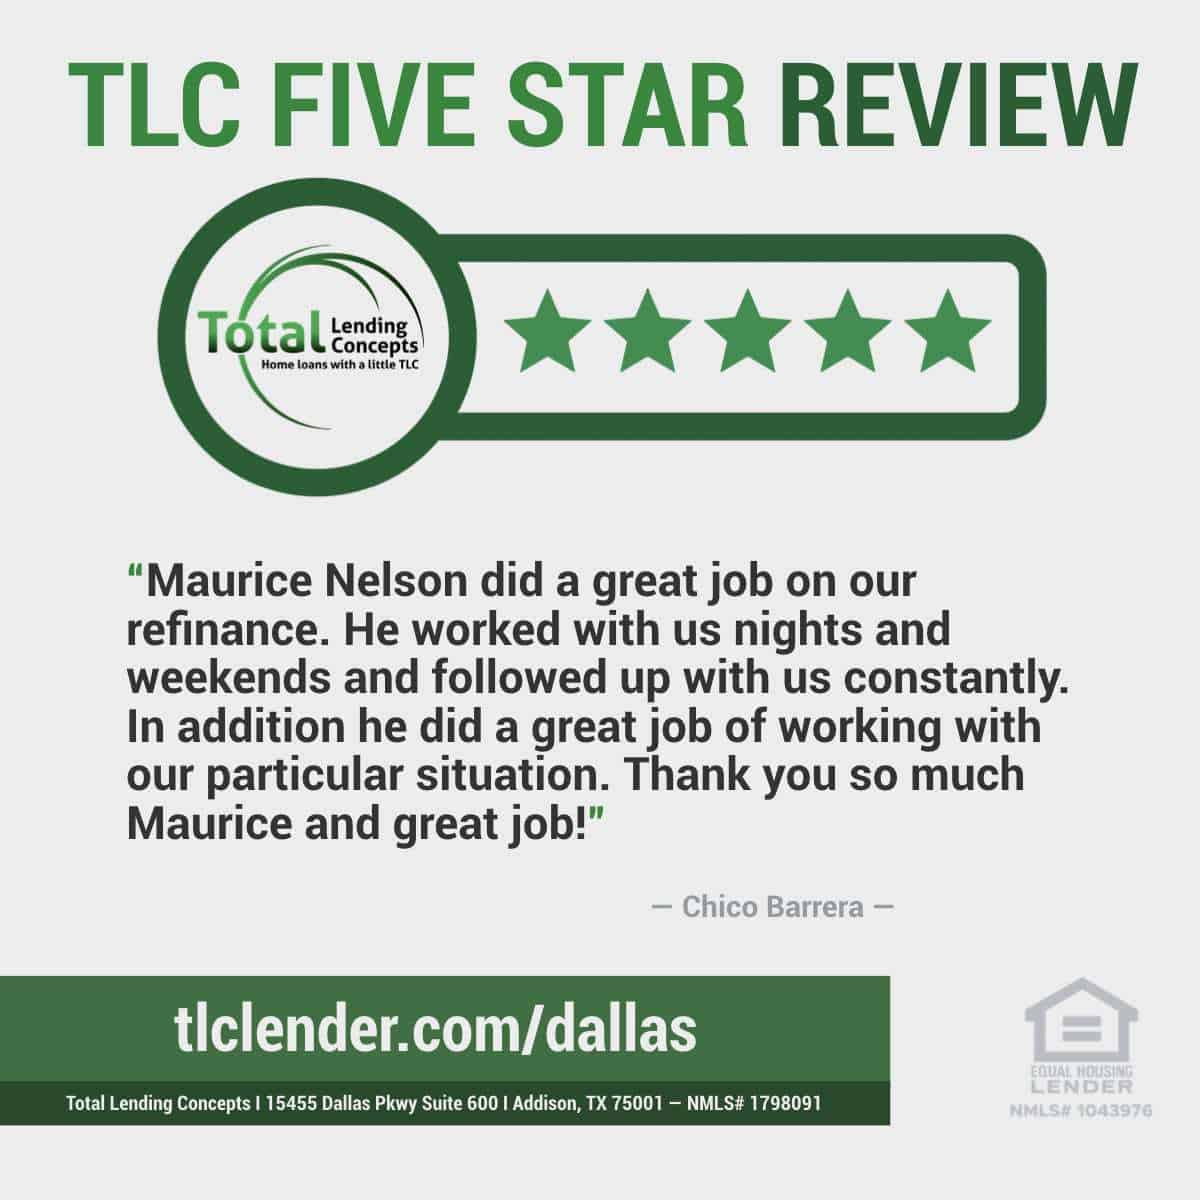 Total-Lending-Concepts-Five-Star-Review-Chico-Barrera-in-Addison-Texas-for-Maurice-Nelson-Home-Loan